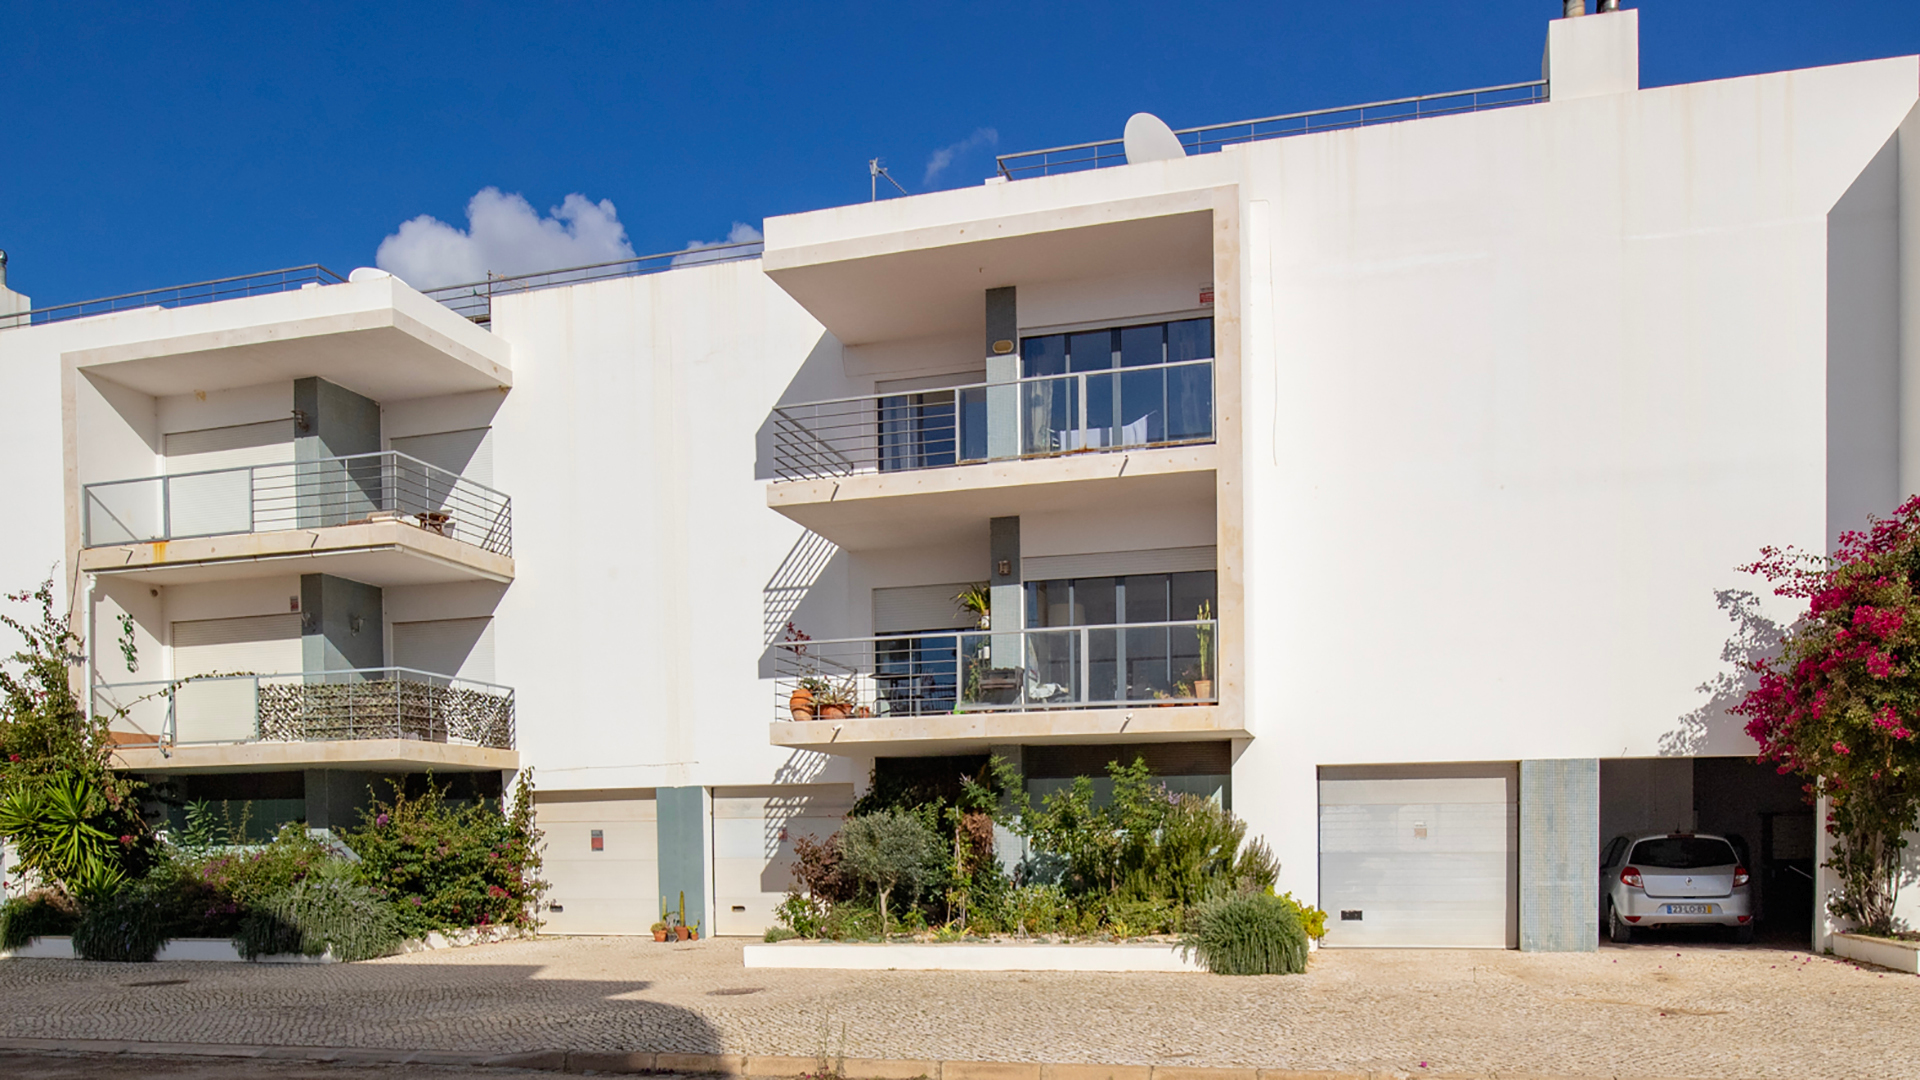 Immaculate 3-bedroom apartment with sea views, roof terrace and garage, Lagos, west Algarve | LG1281 Fantastic opportunity to purchase a south-facing 3-bedroom apartment with sea views, private garage and storage room within walking distance of the 5-Star award-winning marina and historic town centre of Lagos.